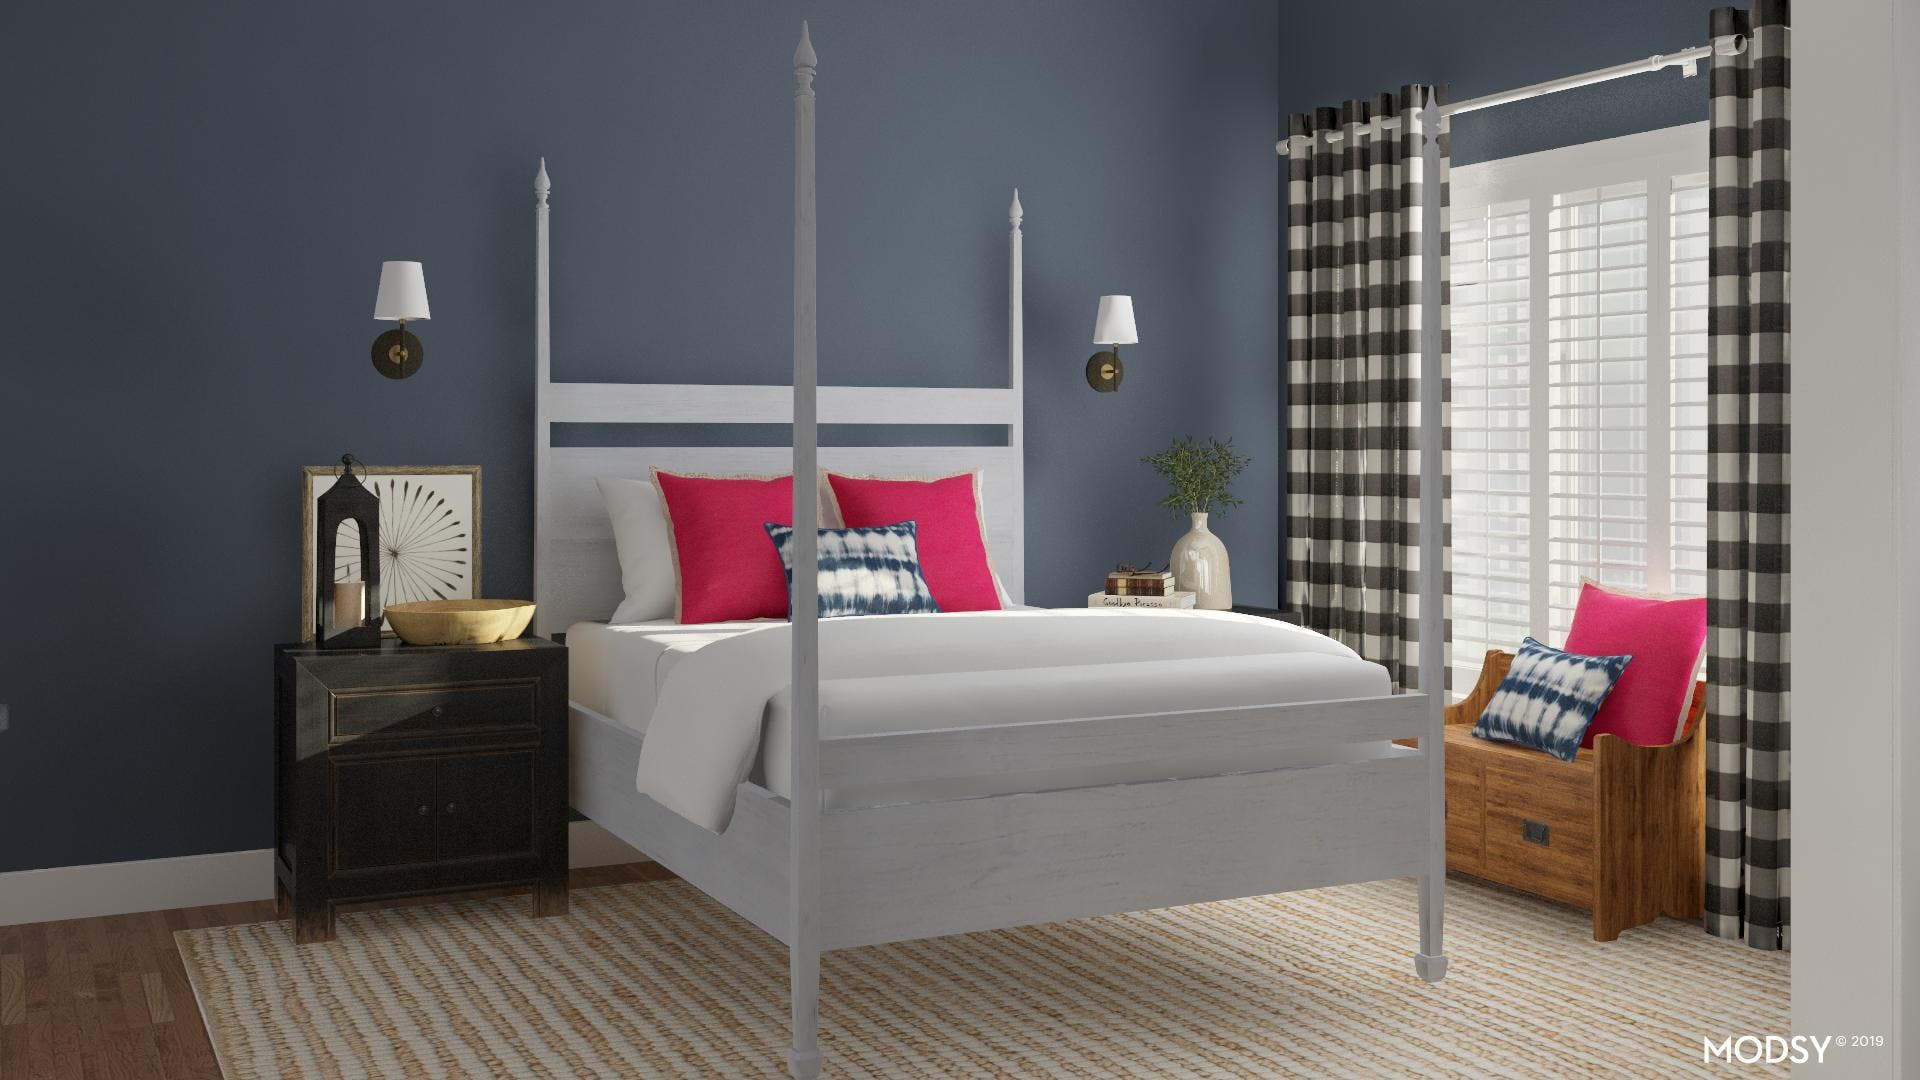 Colonial Inspired Bedroom Design